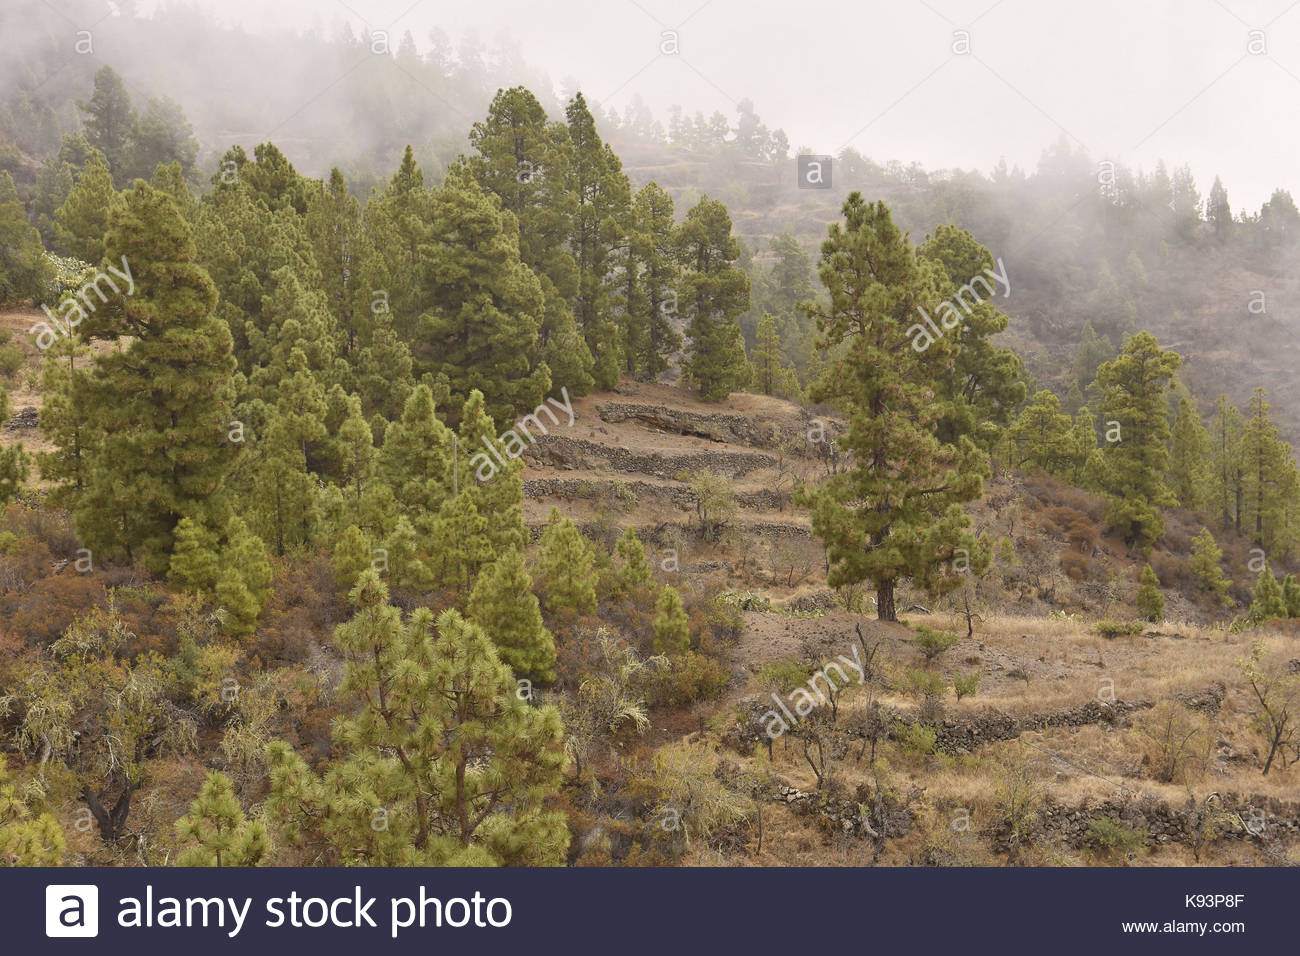 Mist forming over hills with pine trees (pinus canariensis) near town of Tijarafe northwest of La Palma Canary Islands - Stock Image